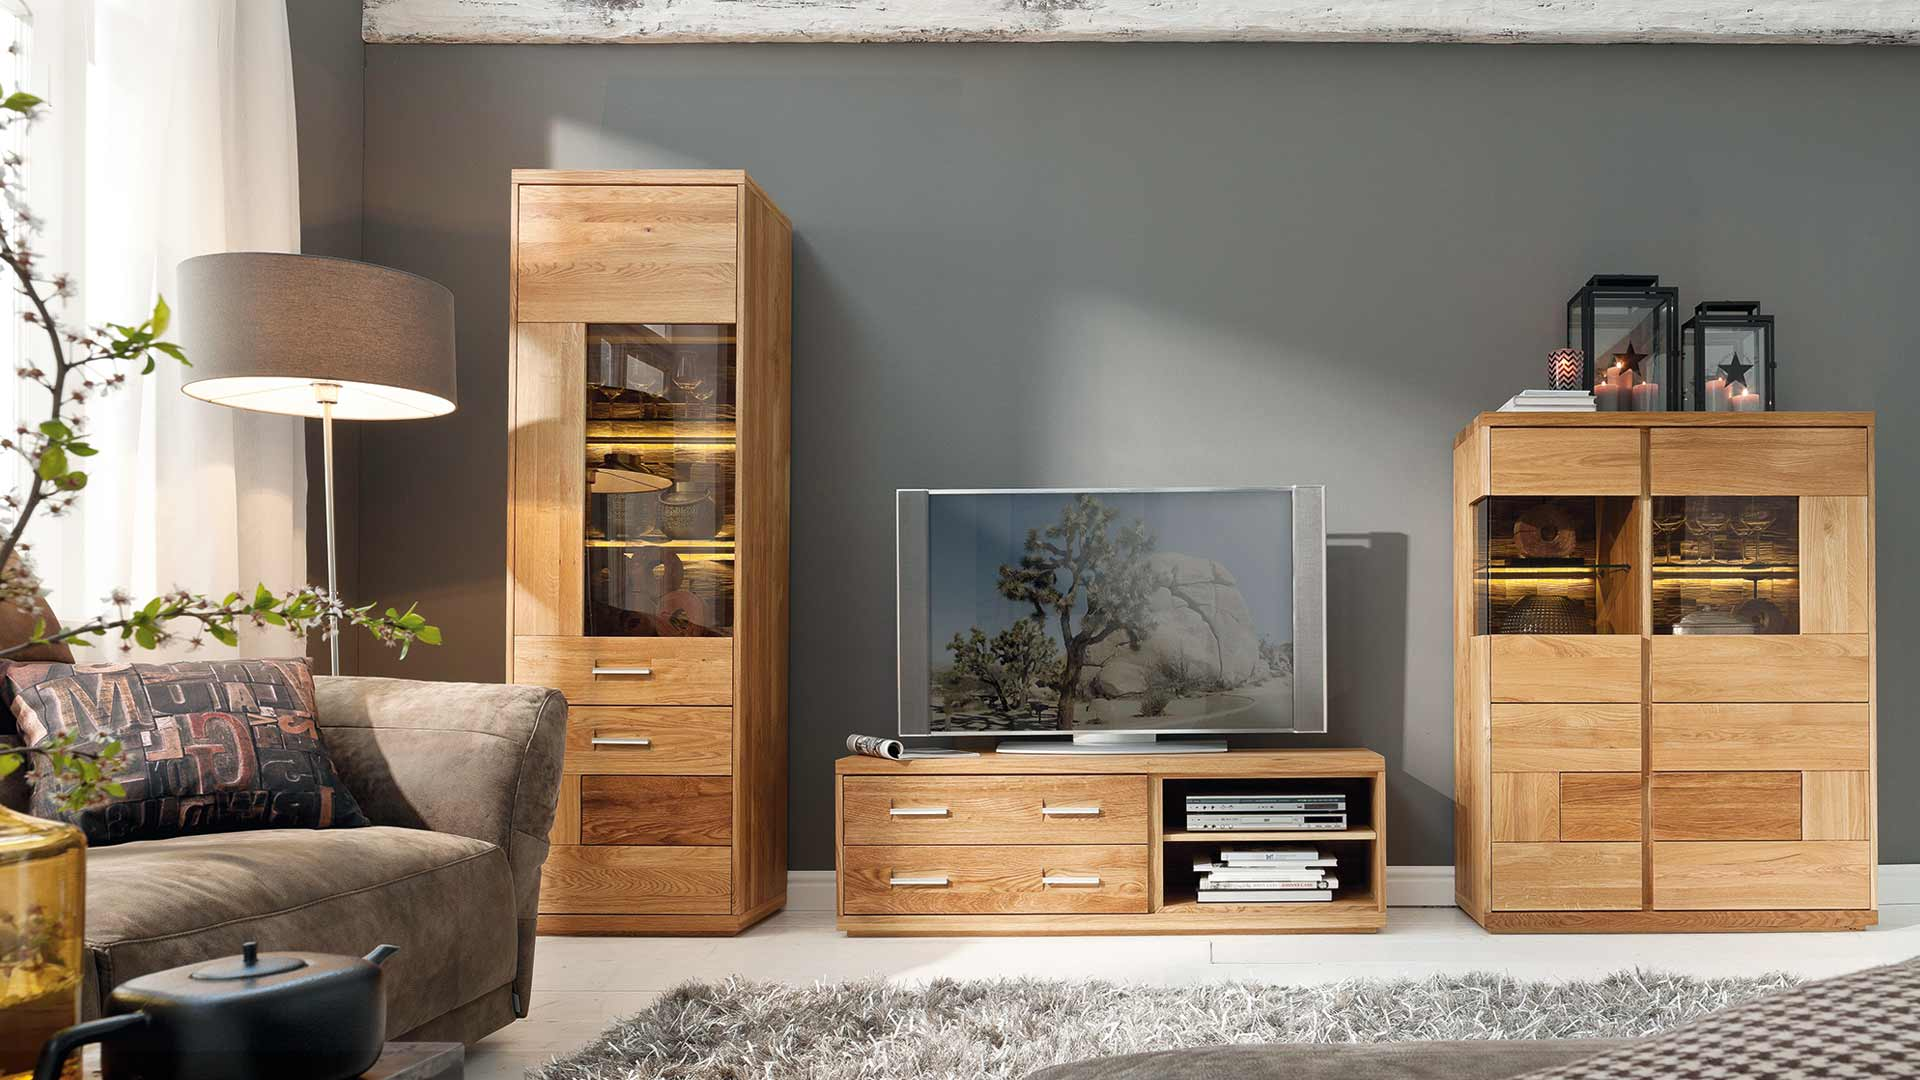 natura oakville von natura einrichten in garbsen nahe hannover m bel hesse bestechende. Black Bedroom Furniture Sets. Home Design Ideas